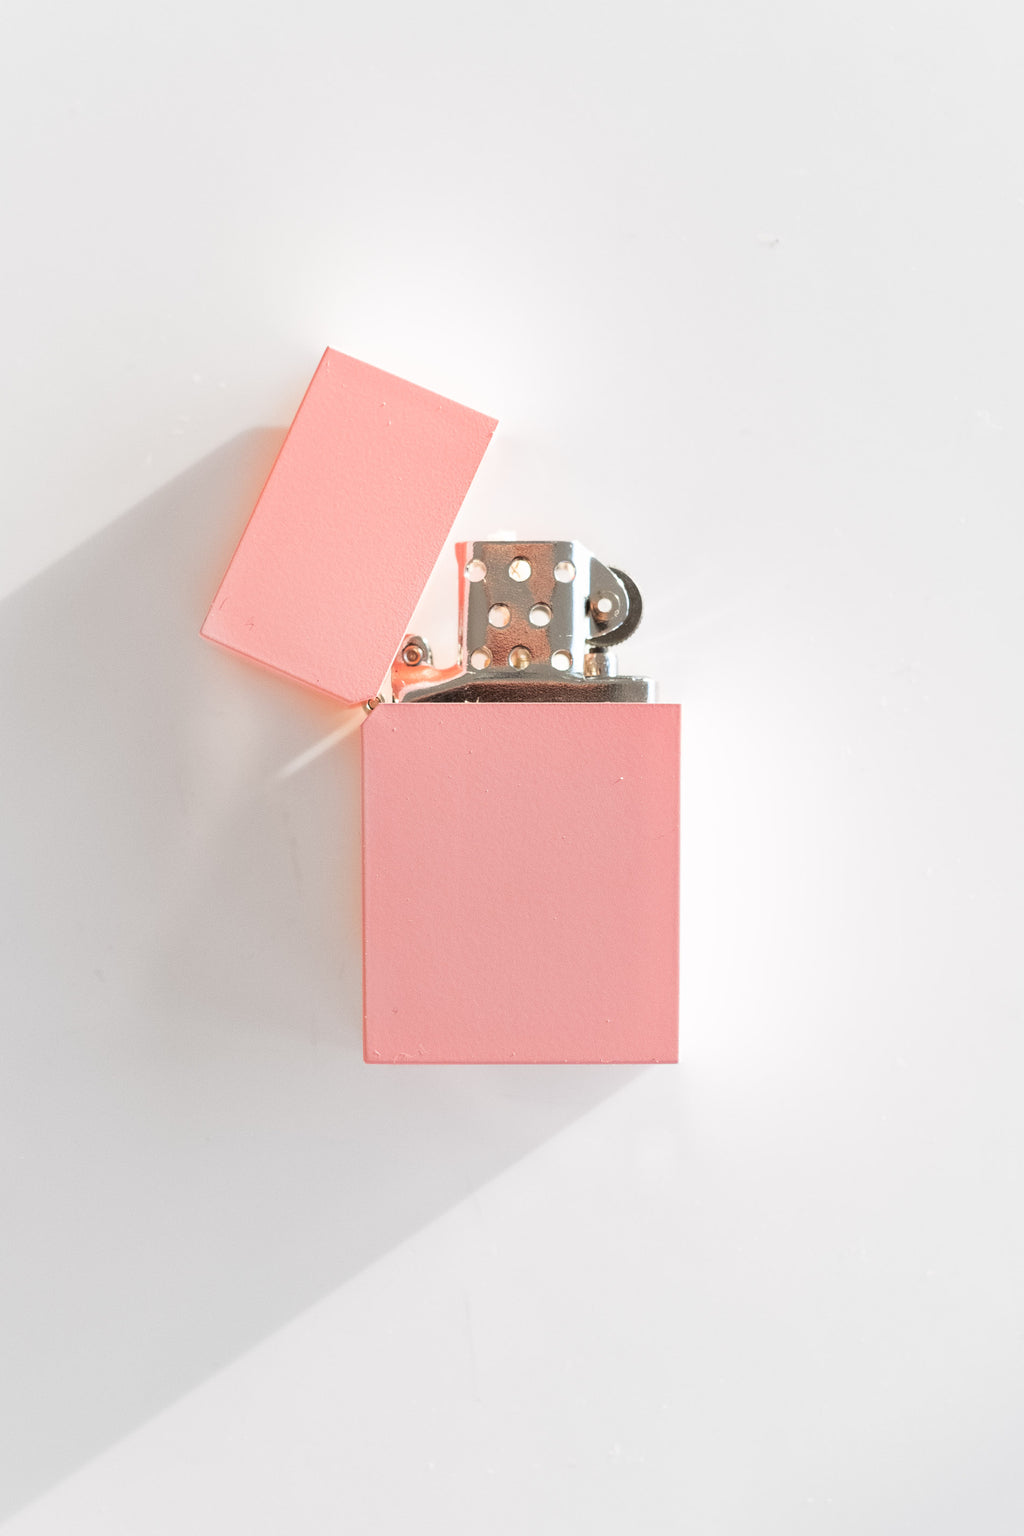 HARD EDGE LIGHTER IN PINK